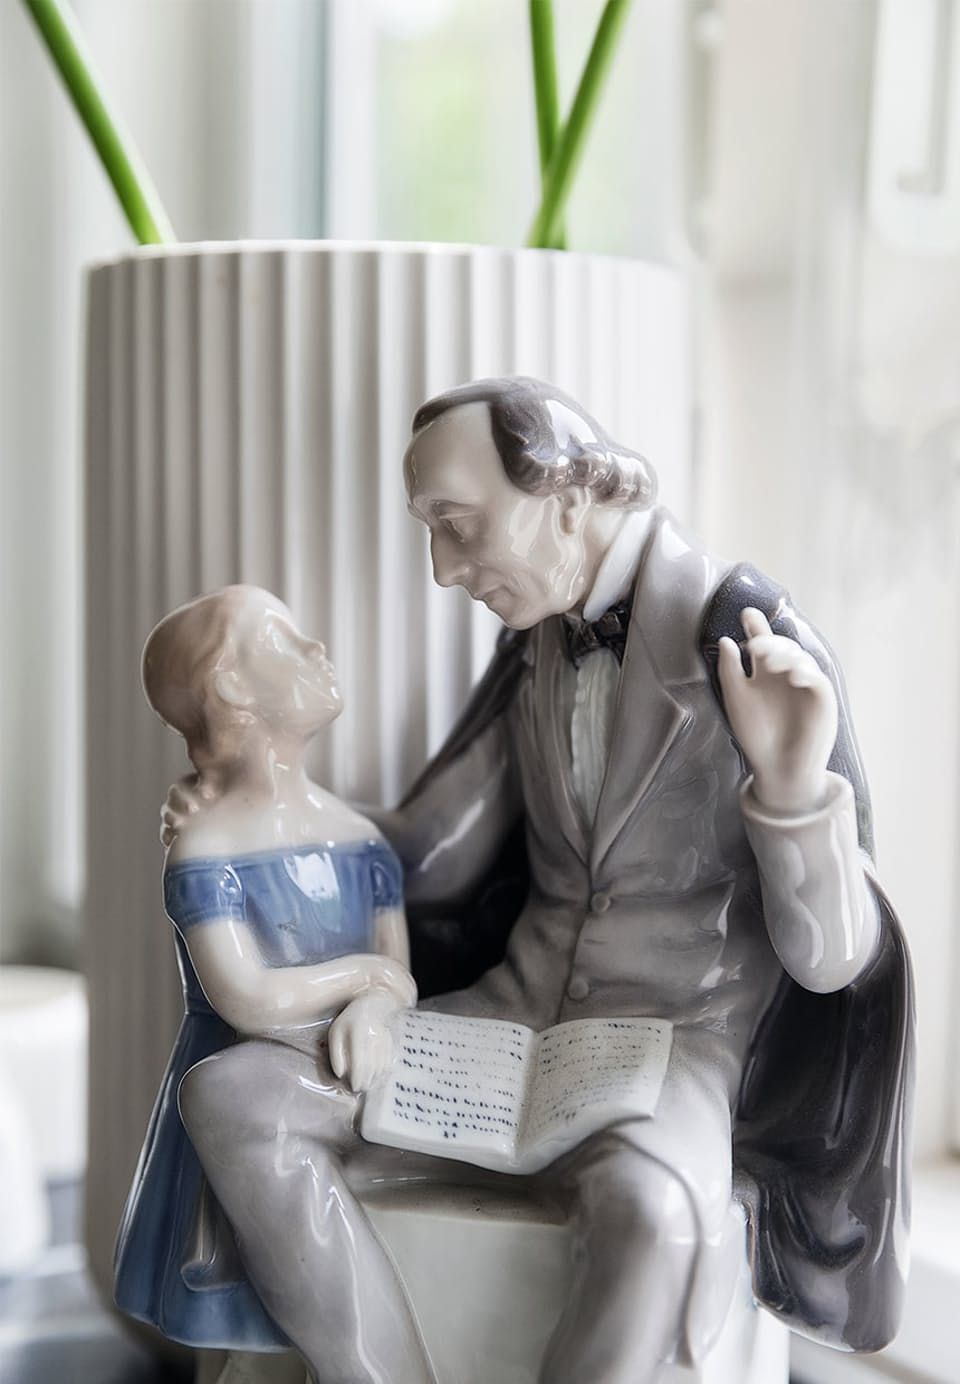 Porcelain figurine of H. C. Andersen telling stories to a child. Unique and valuable.